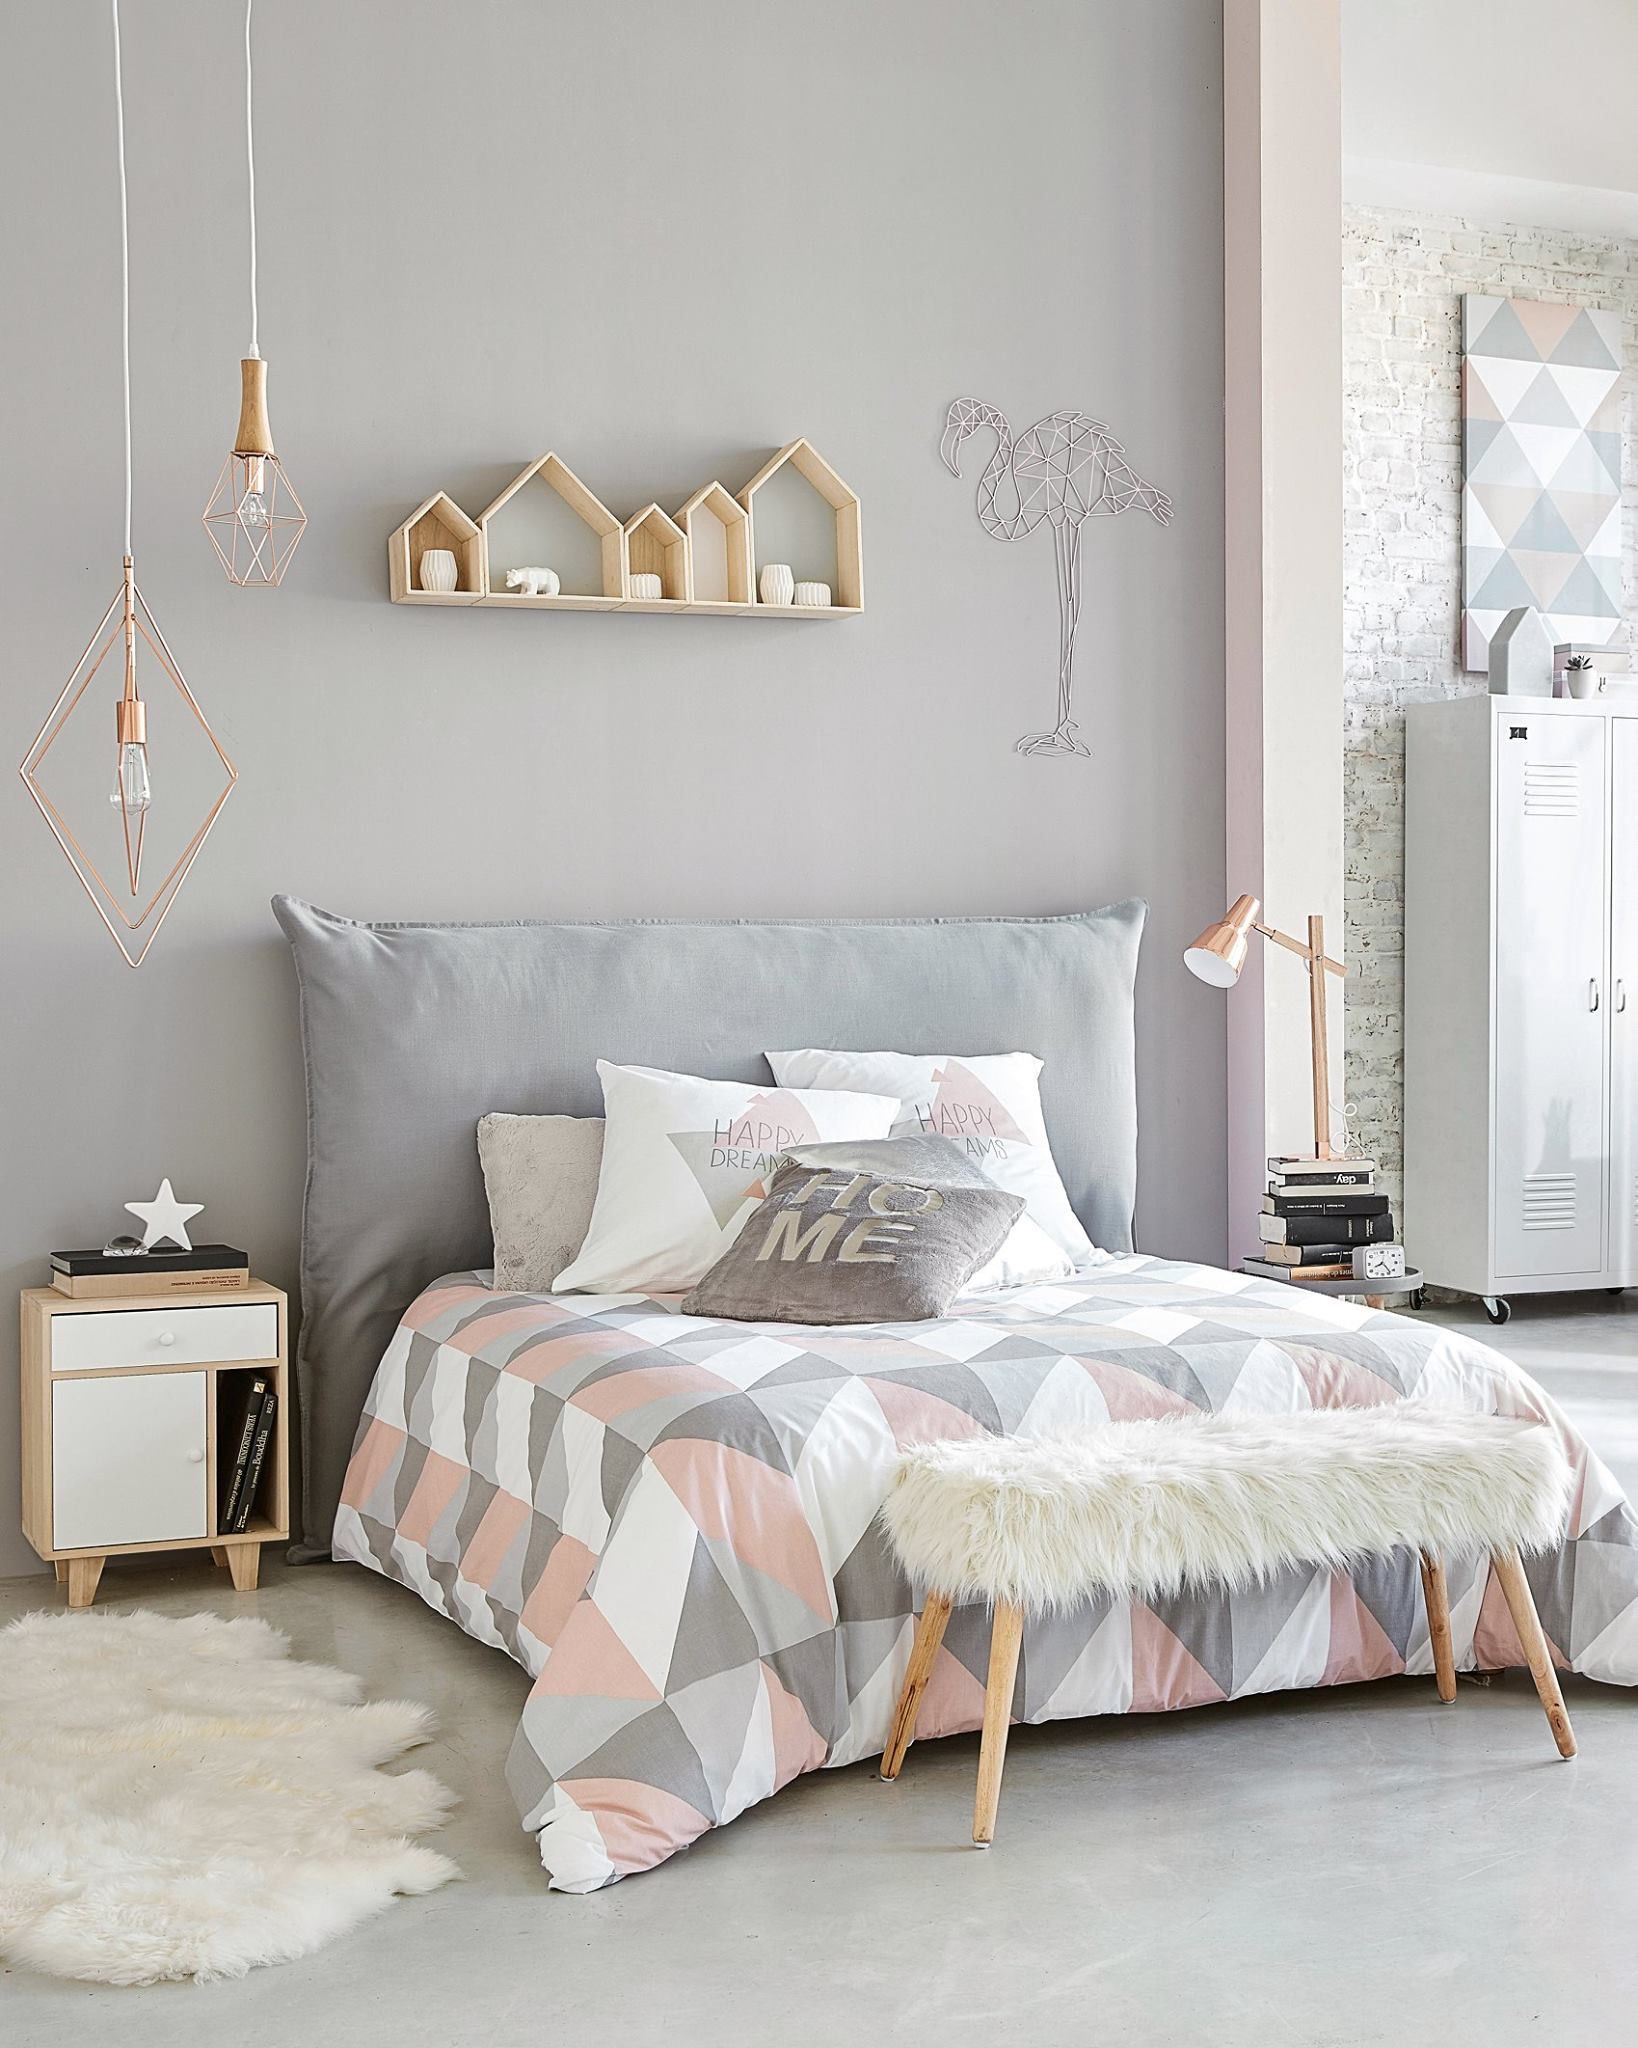 Bedroom paint finish gray gray abstract - Paint finish for bedroom ...